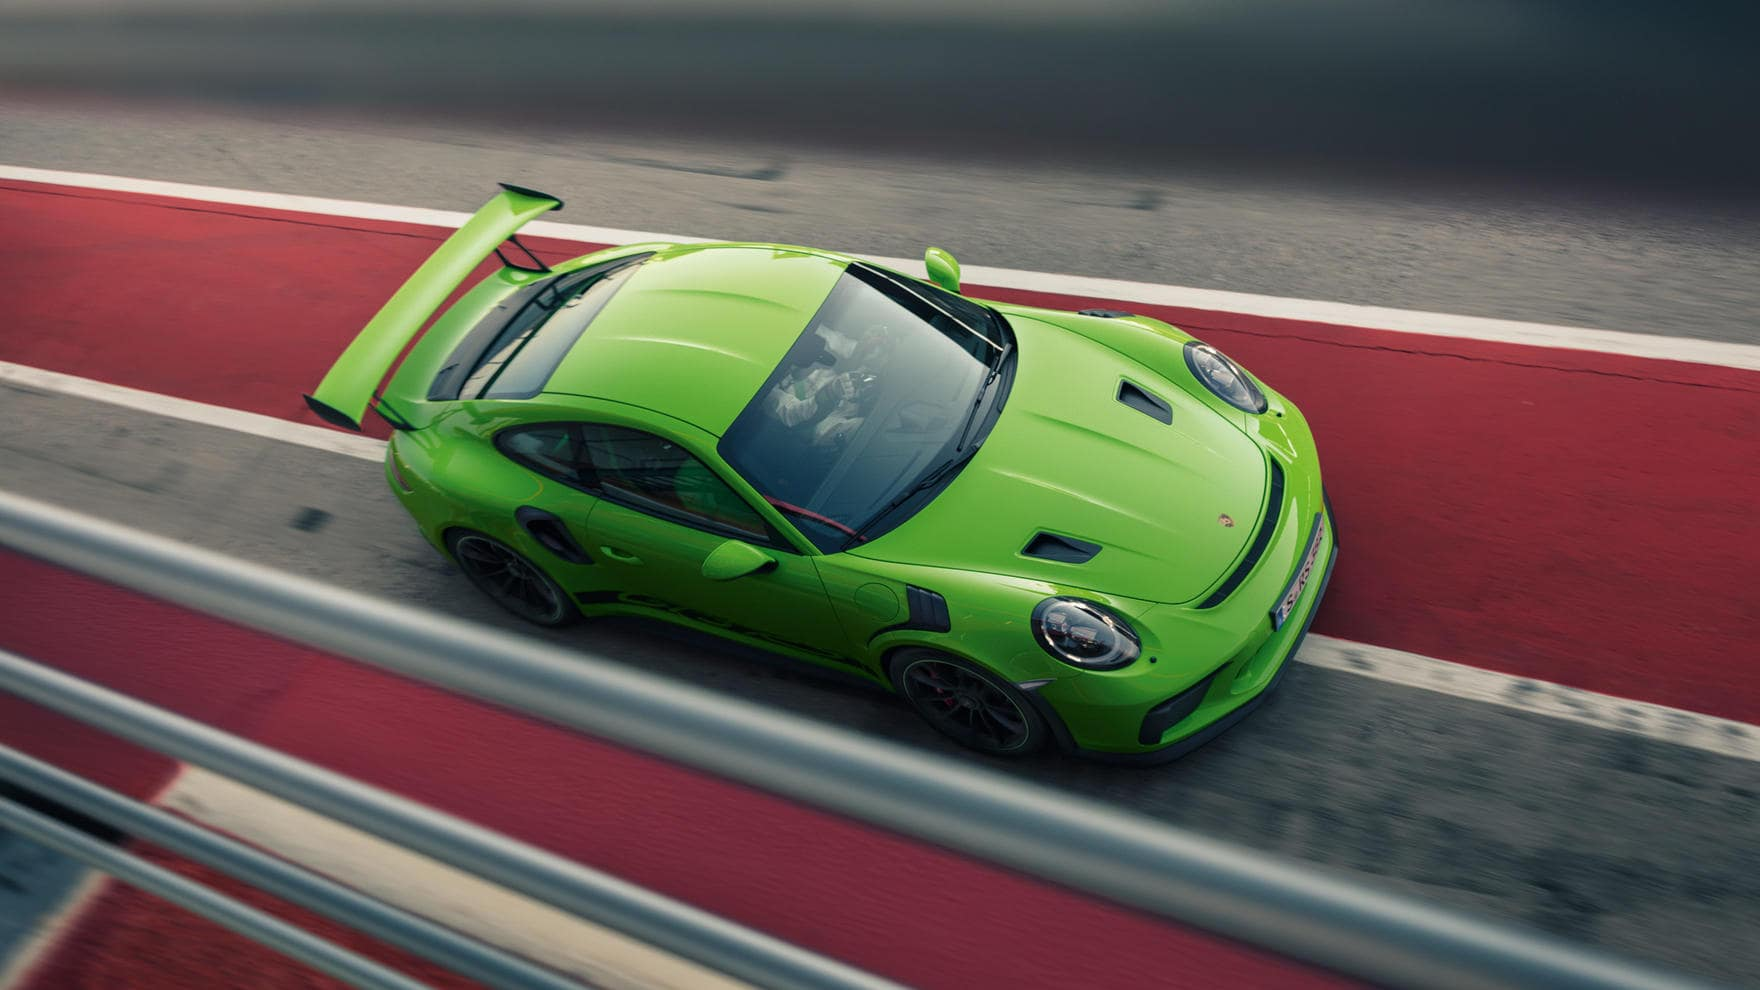 911 GT3 RS on the track